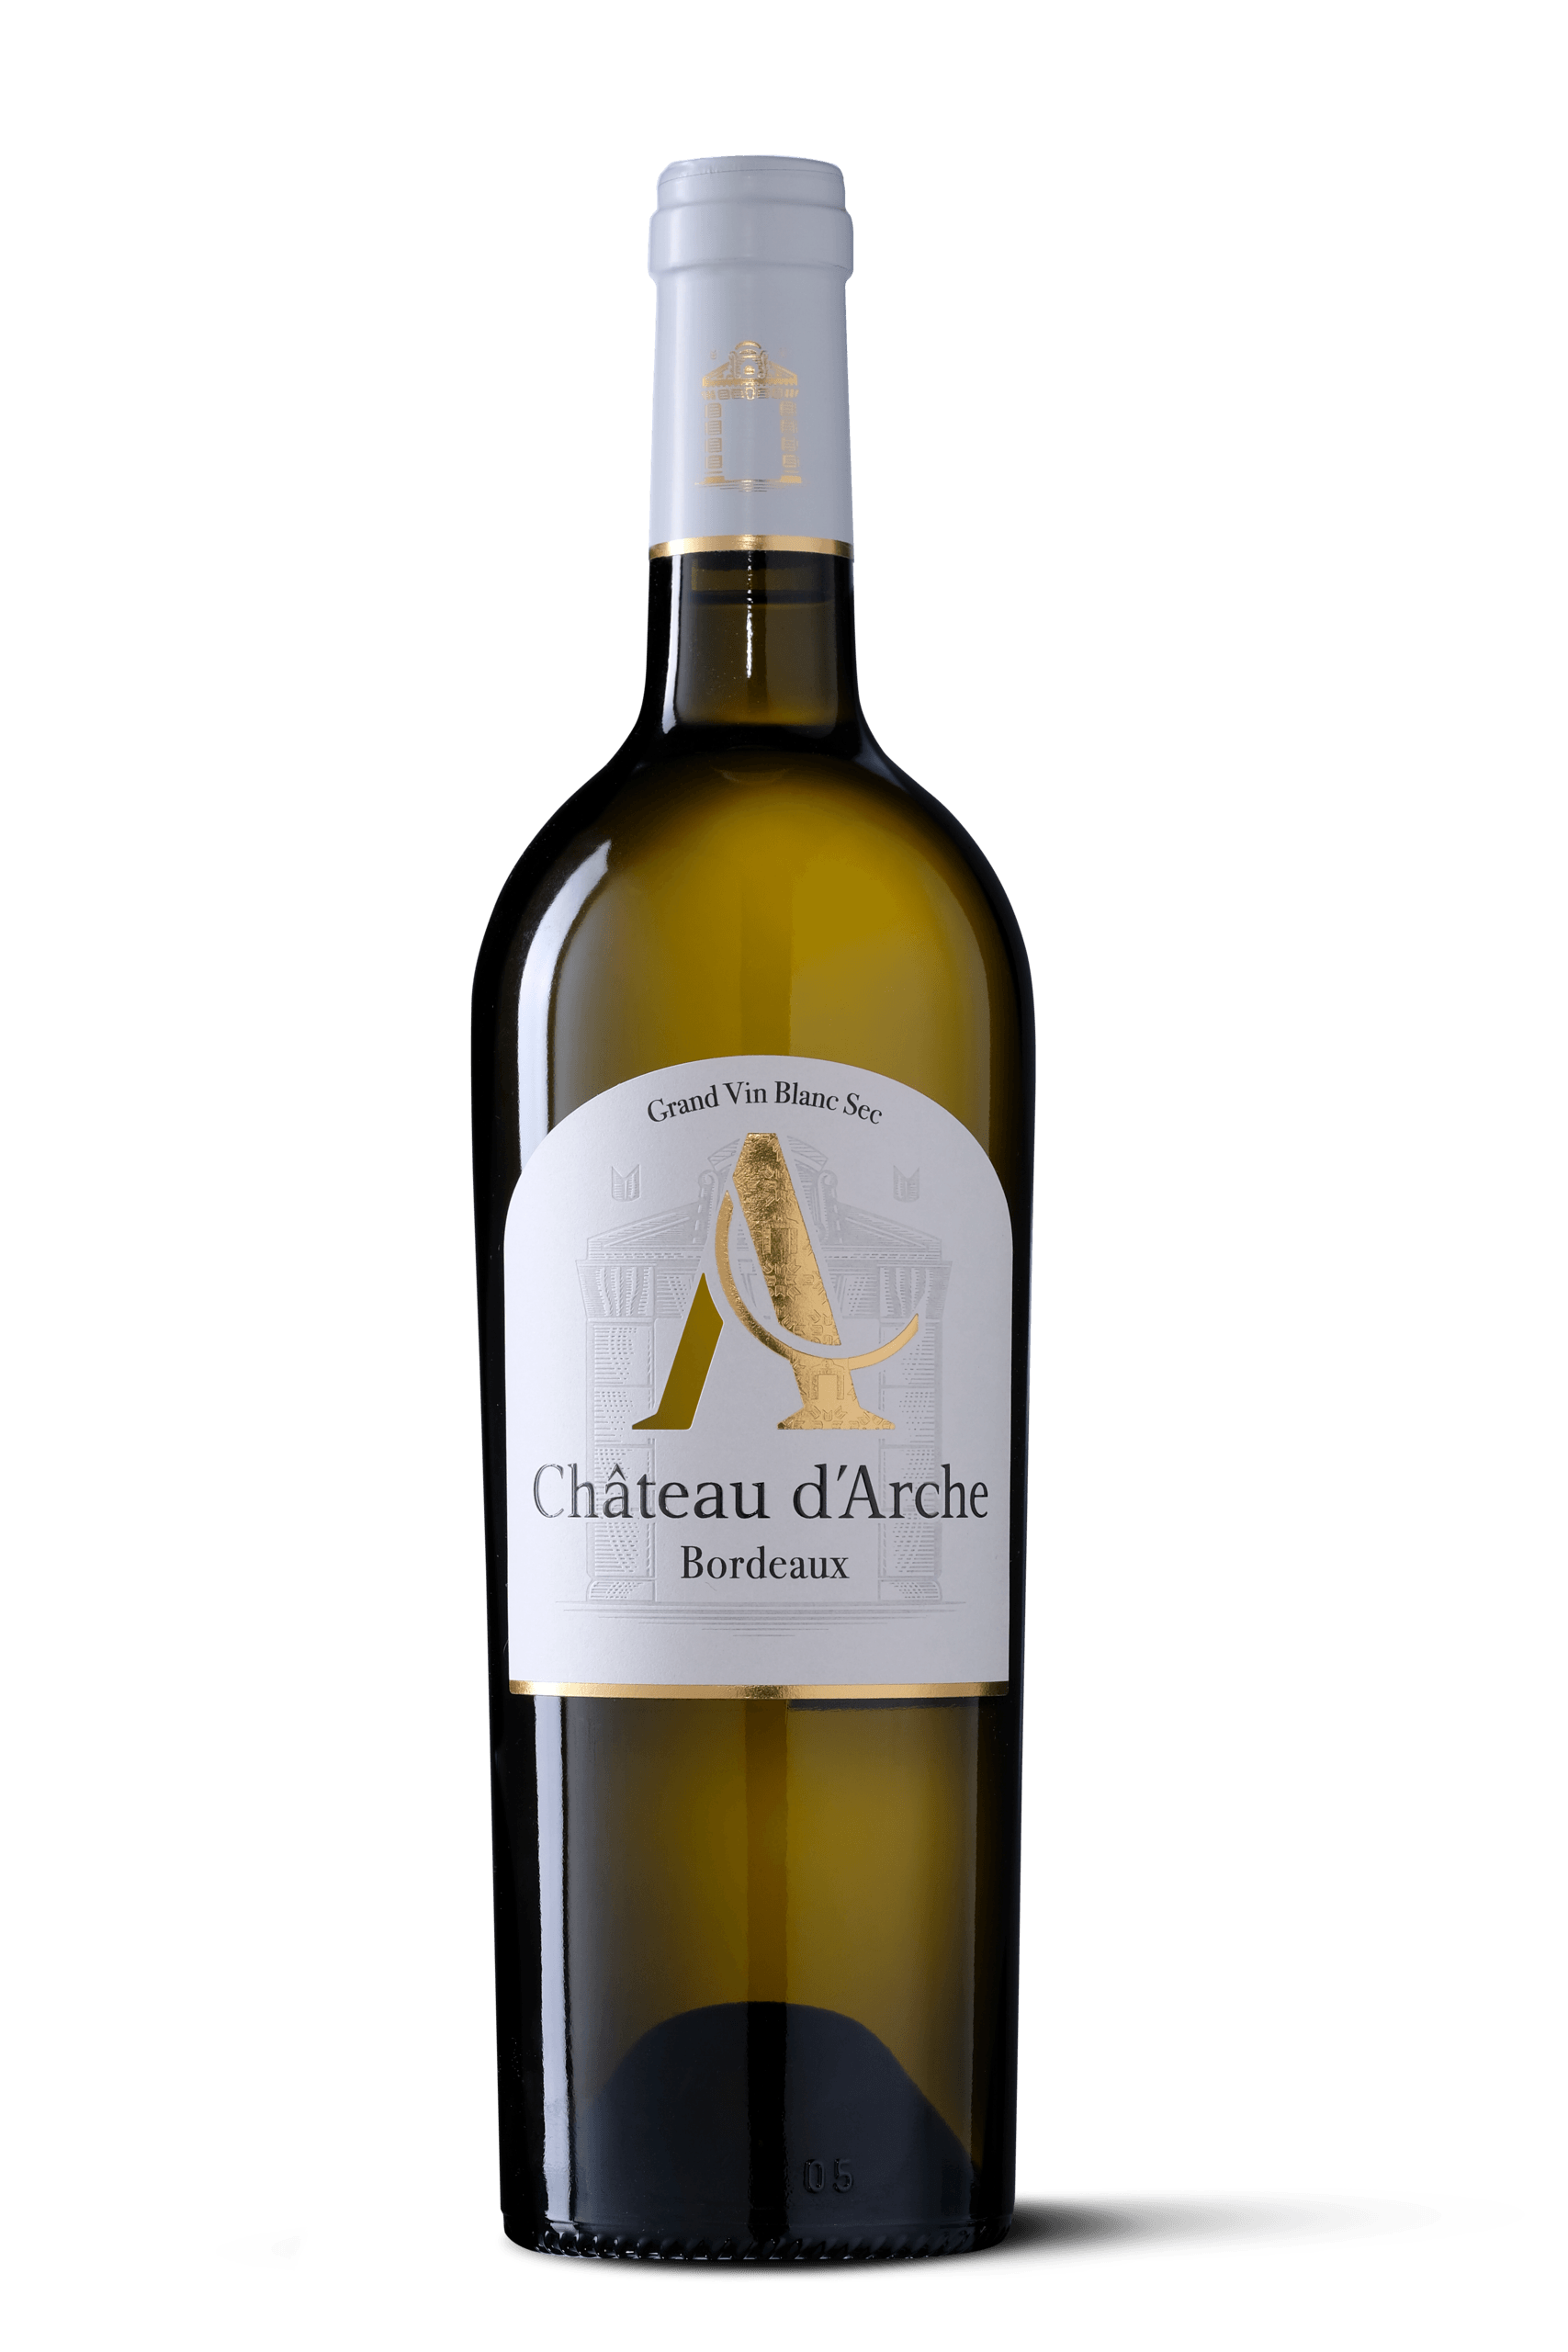 Archanges Bordeaux Blanc 2018 - Chateau d'Arche